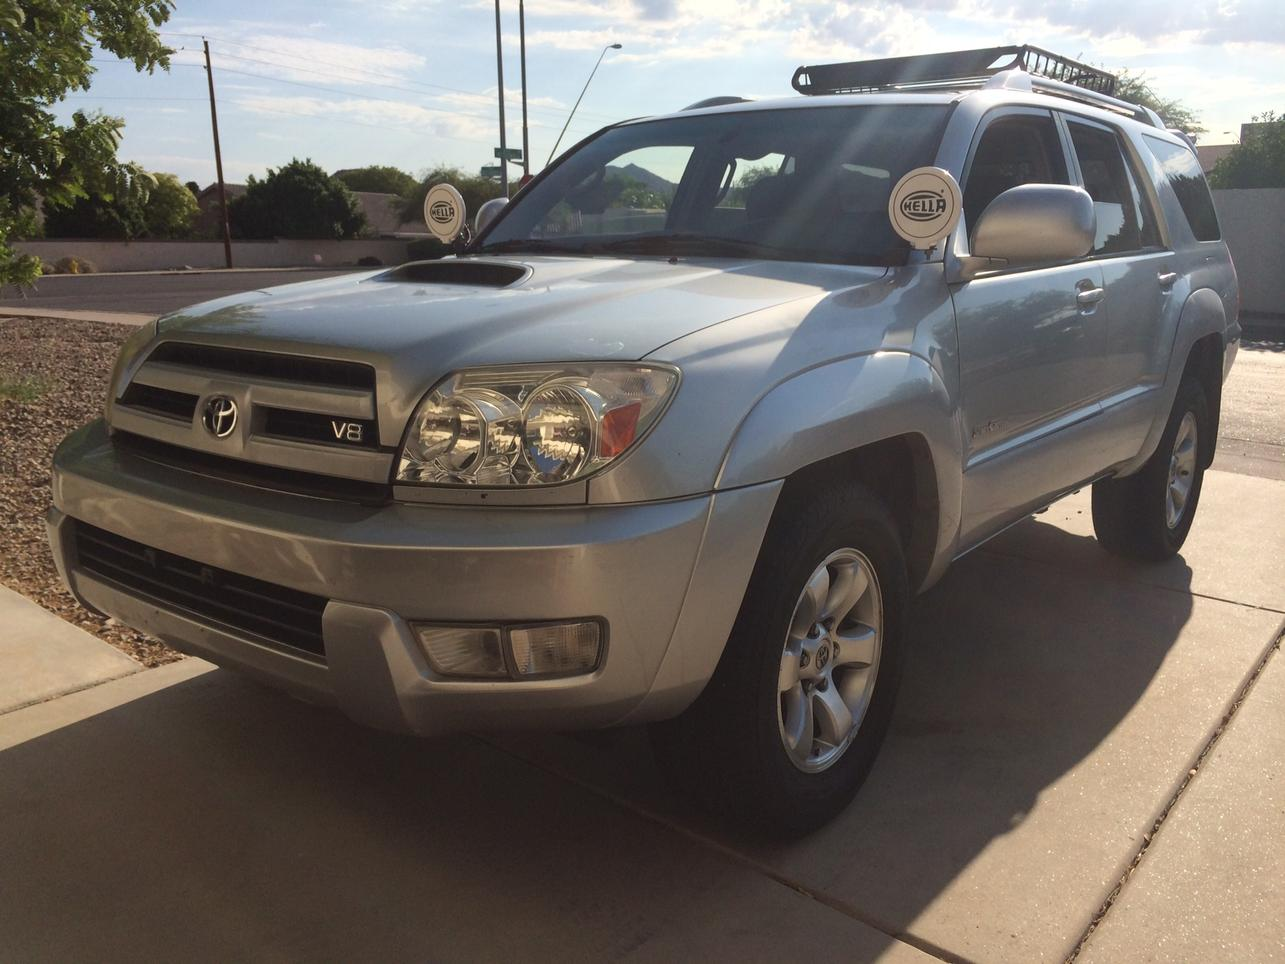 Pc1ps 4th Gen 4prerunner Build Thread Toyota 4runner Forum Need Some Help With Hella Lights Wiring 2014 07 18